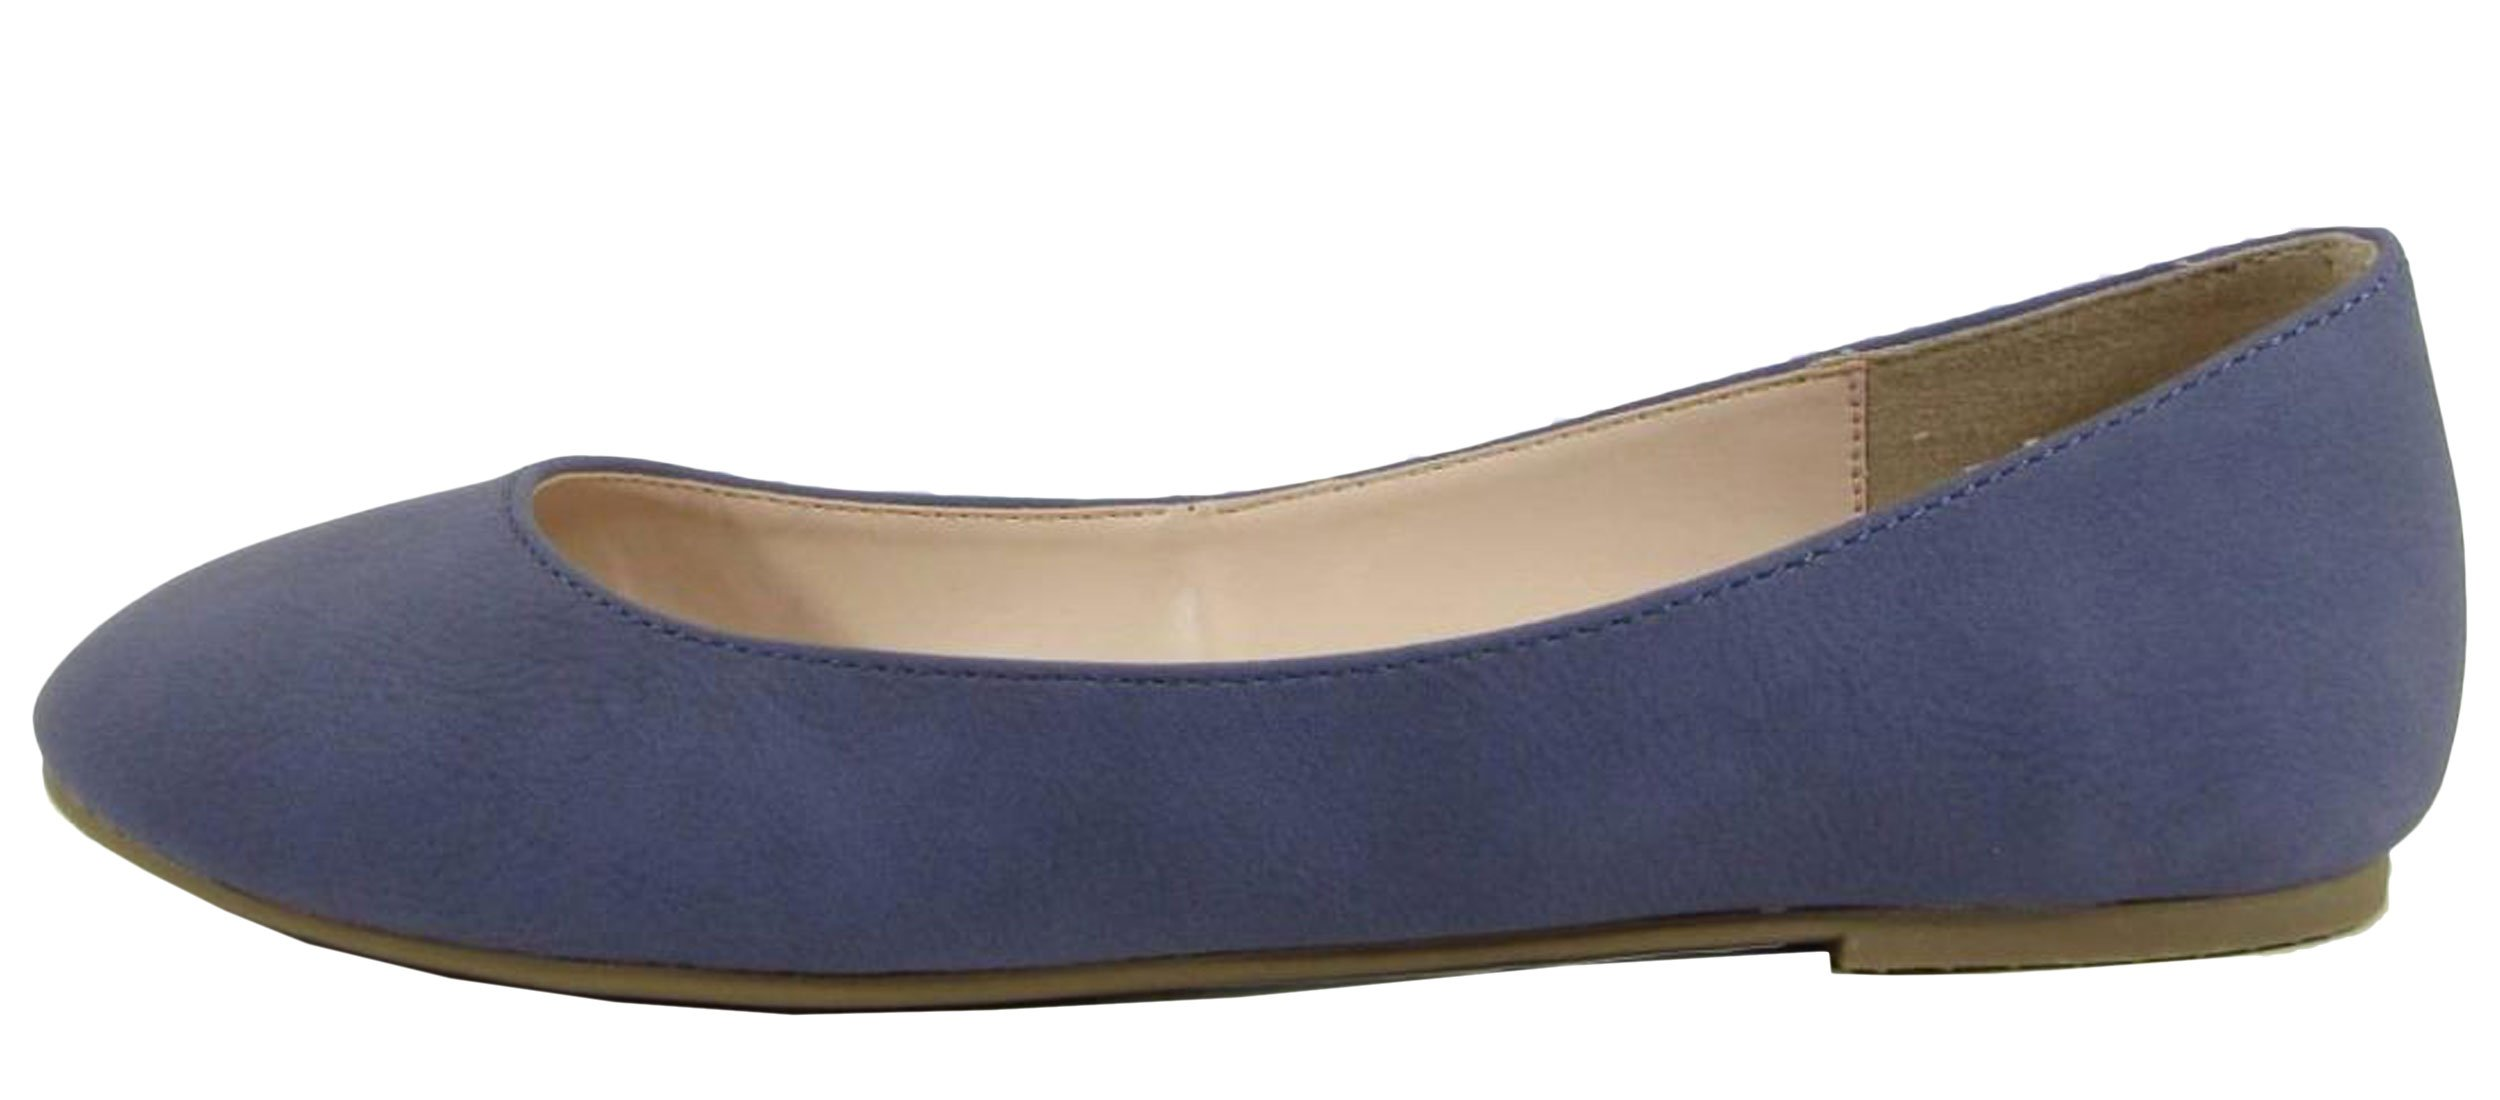 City Classified Women's Thesis Classic Round Toe Ballet Flats (7 B(M) US, Blue Nubuck)